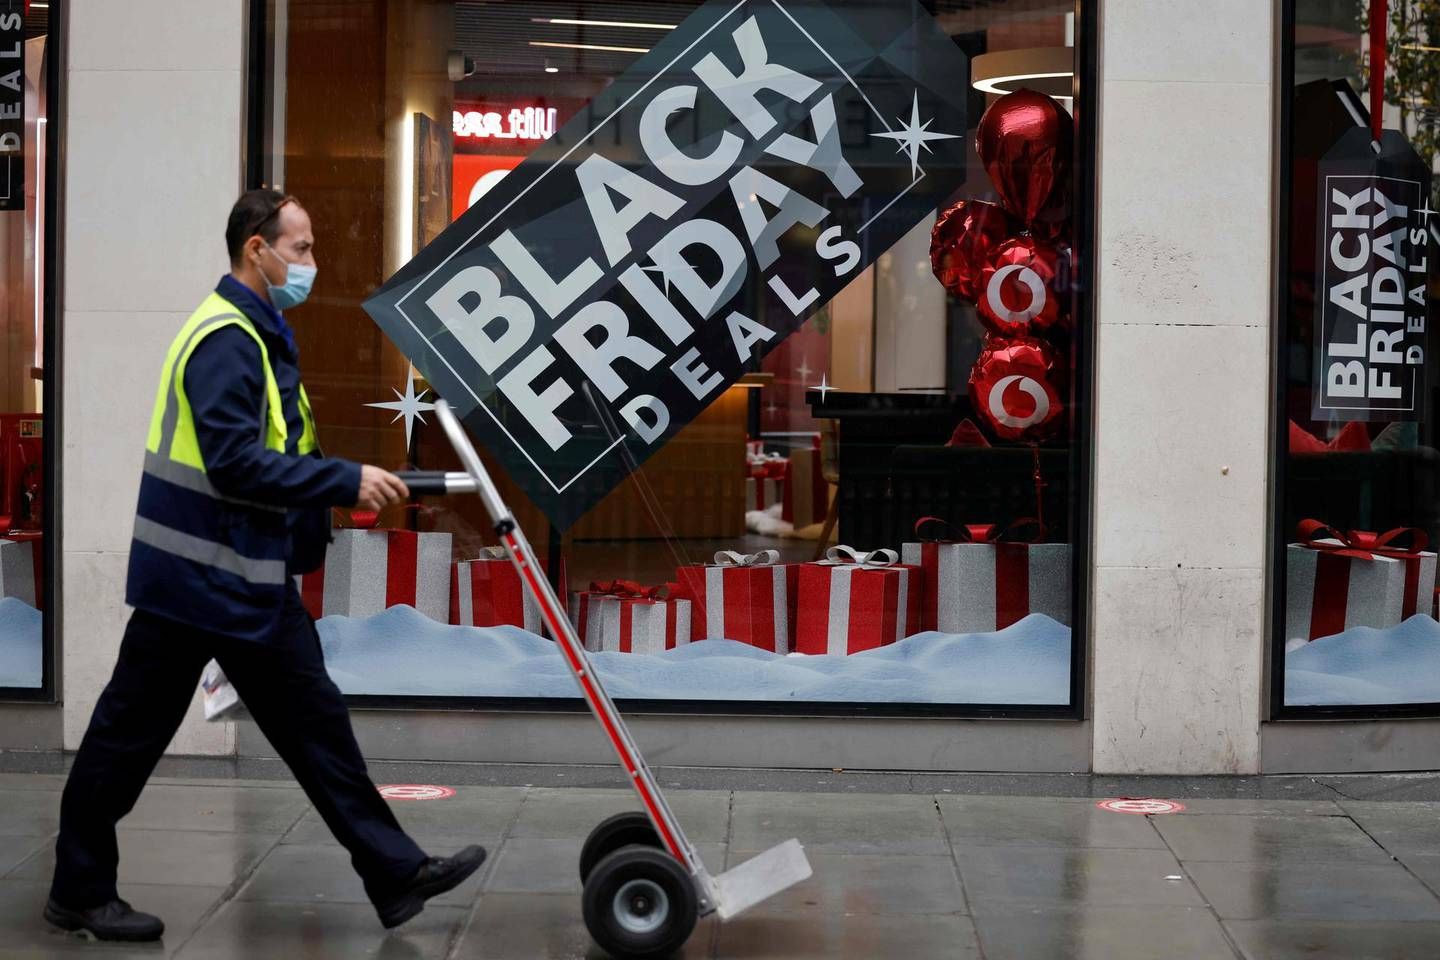 A delivery man walks in the rain past Black Friday offers in a shop in central London on November 20, 2020, as life under a second lockdown continues in England.  The current lockdown in England has shuttered restaurants, gyms and non-essential shops and services until December 2, with hopes business could resume in time for Christmas. / AFP / Tolga Akmen